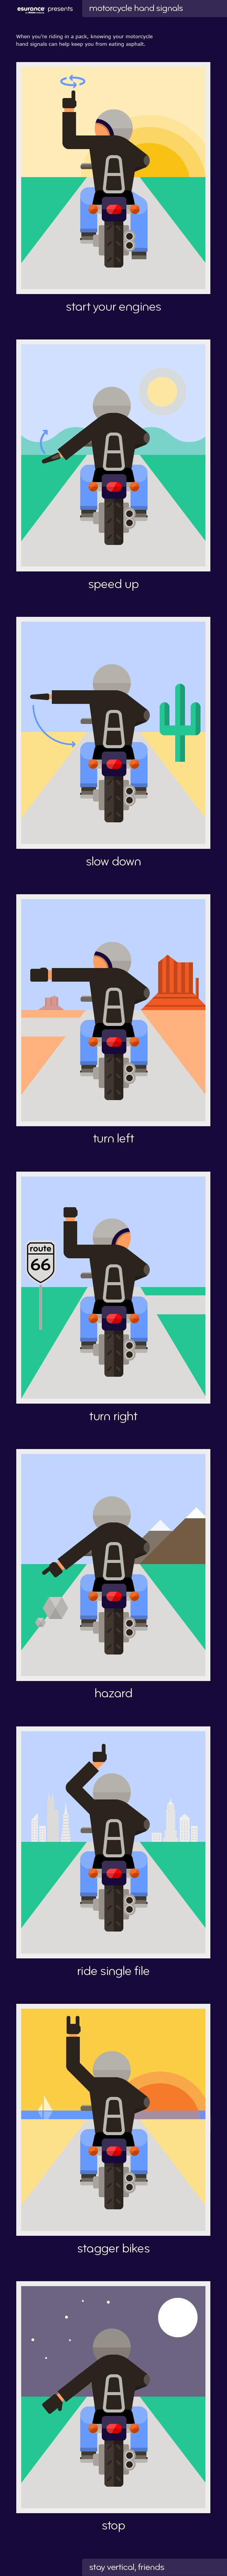 """Motorcycle riders use a variety of signals to indicate everything from """"slow down"""" to """"watch out, hazard ahead."""" Check out the infograph to see the top 9 motorcycle hand signals."""